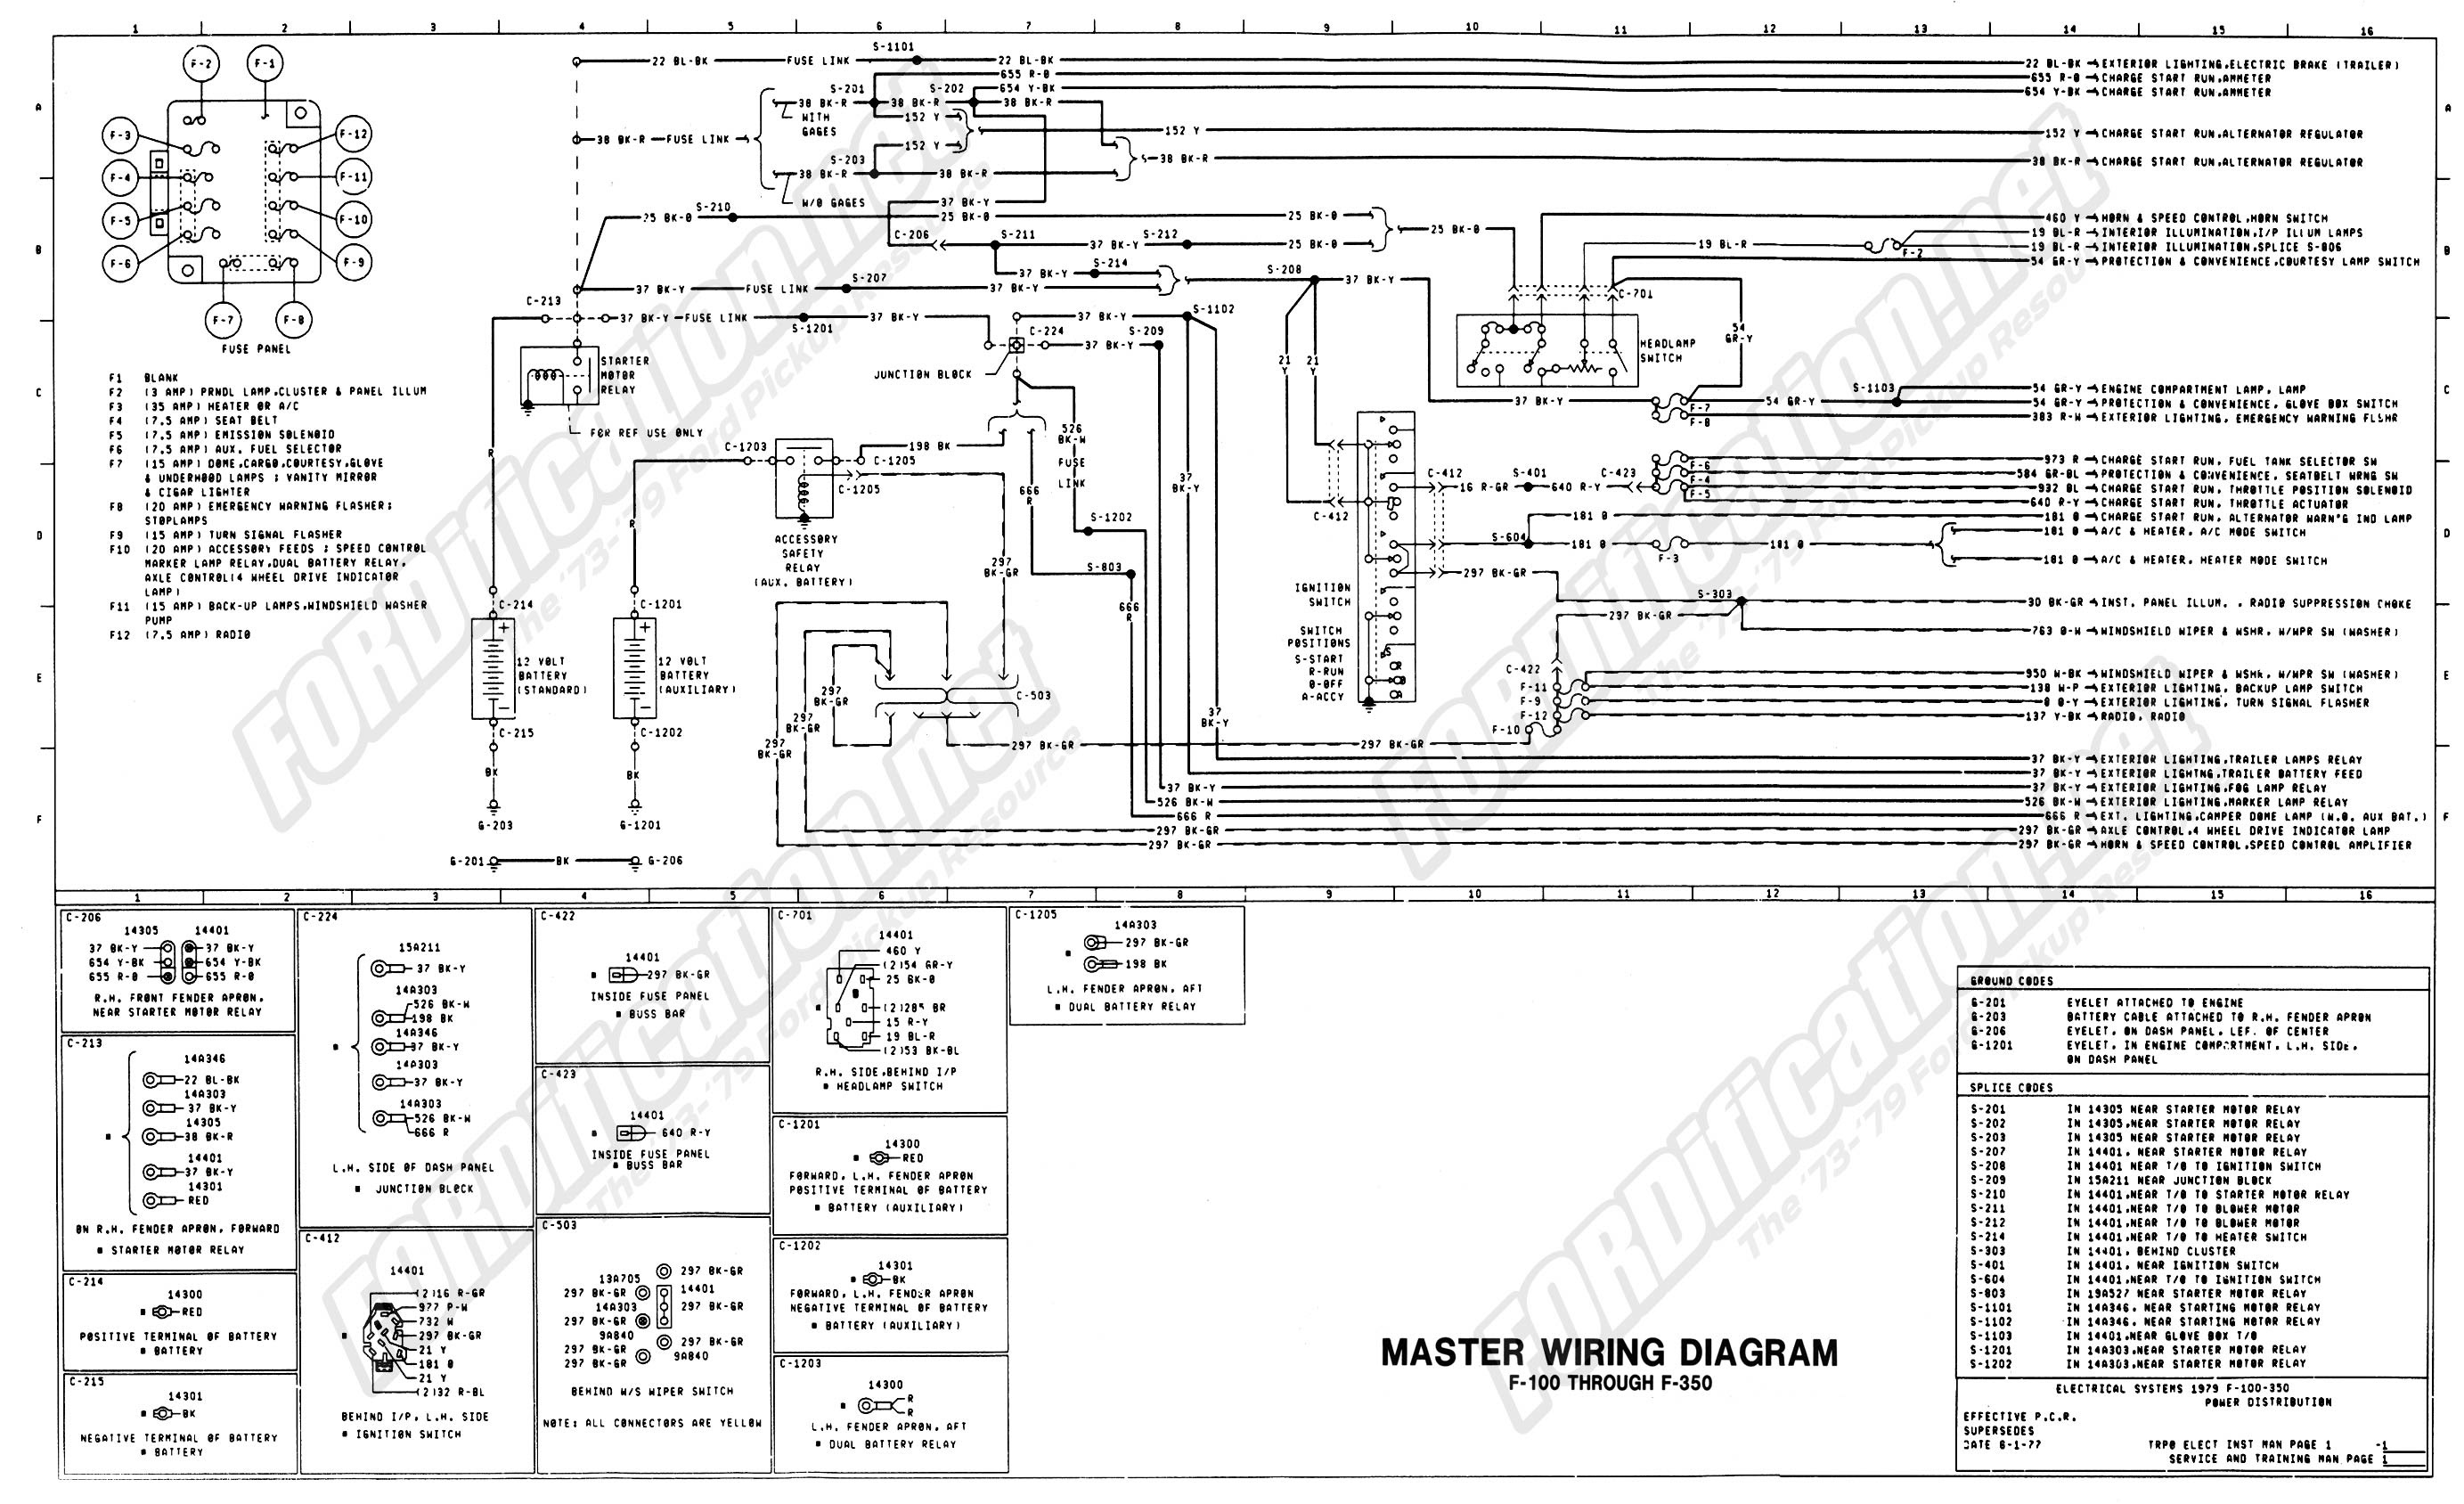 1979 F100 Ignition Switch Wiring Diagram Positions Ford Truck Enthusiasts Forums